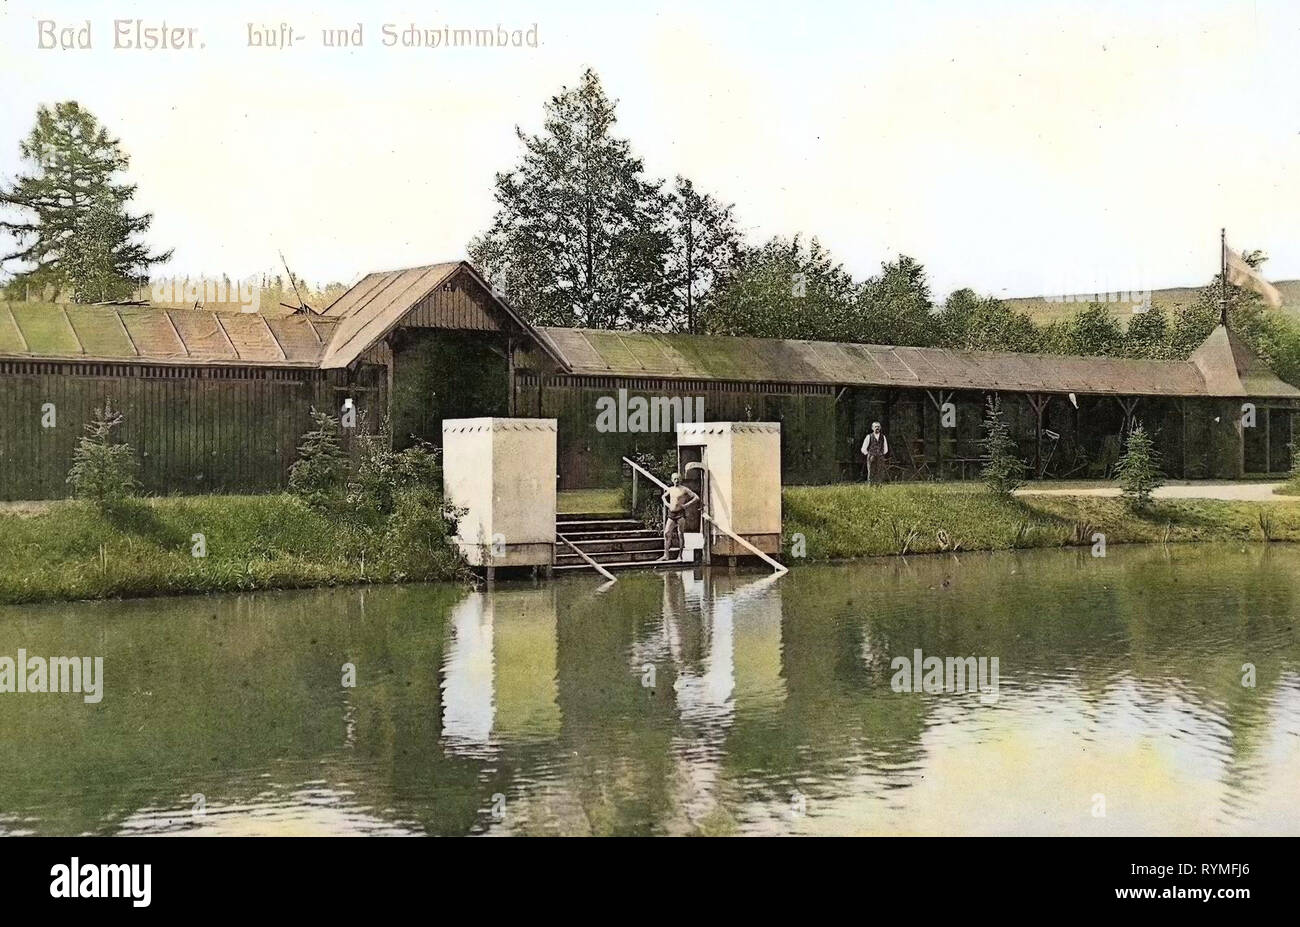 Baths in Saxony, Bad Elster (Gondelteich), 1907, Vogtlandkreis, Bad Elster, Luft & Schwimmbad, Germany - Stock Image